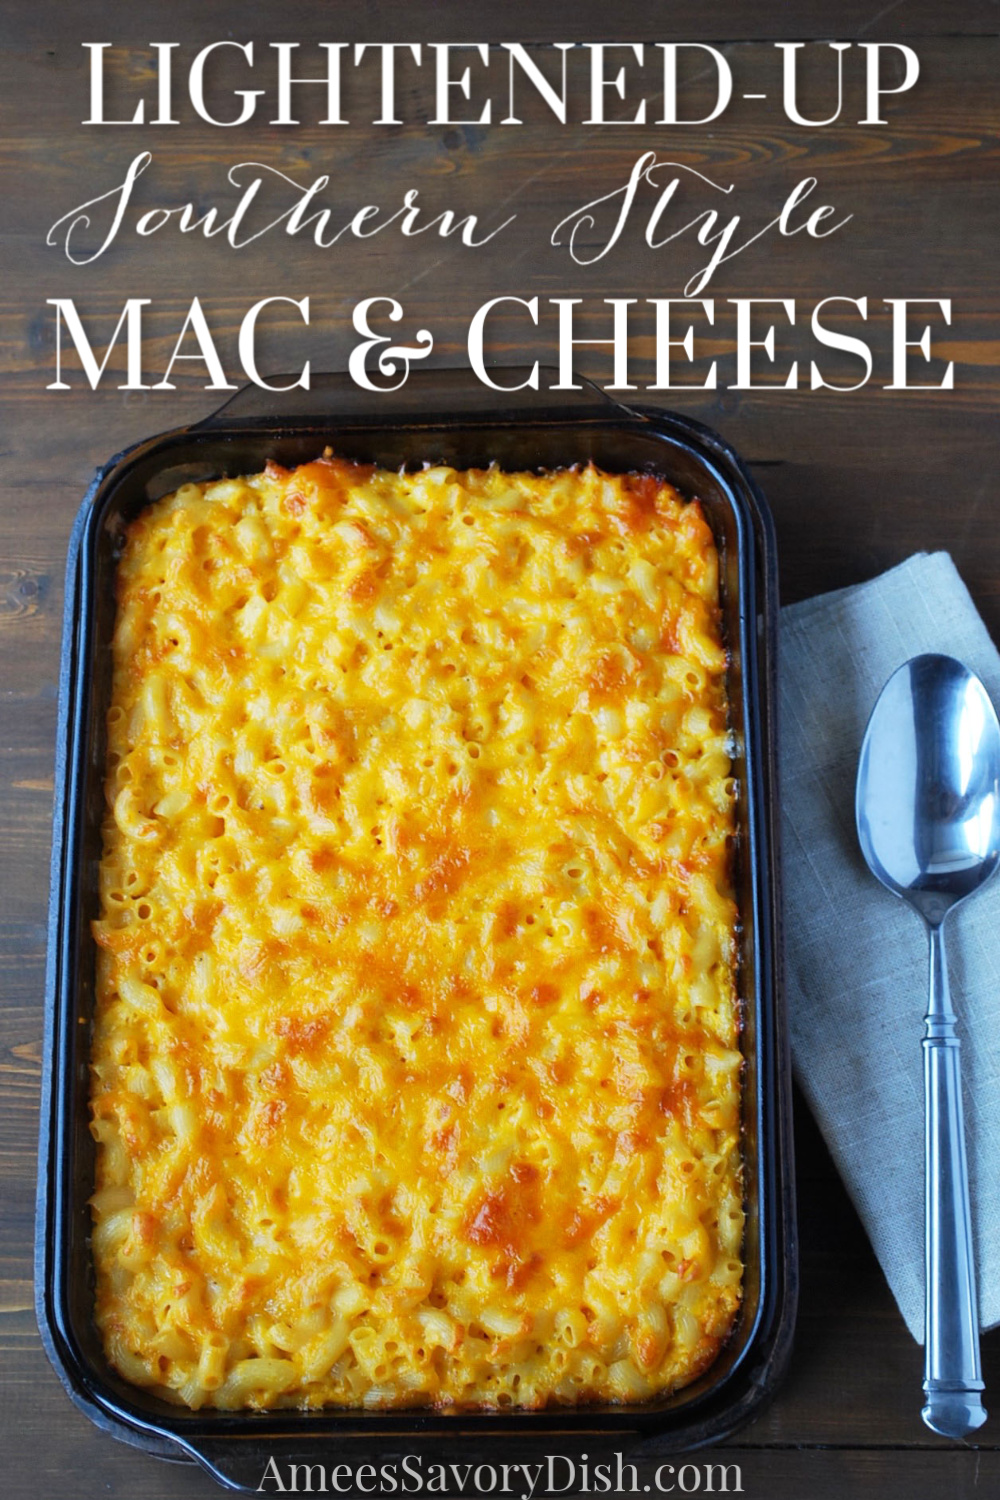 A delicious lightened-up version of decadent southern macaroni and cheese!  #southerneats #southernmacandcheese #macaroniandcheese via @Ameessavorydish